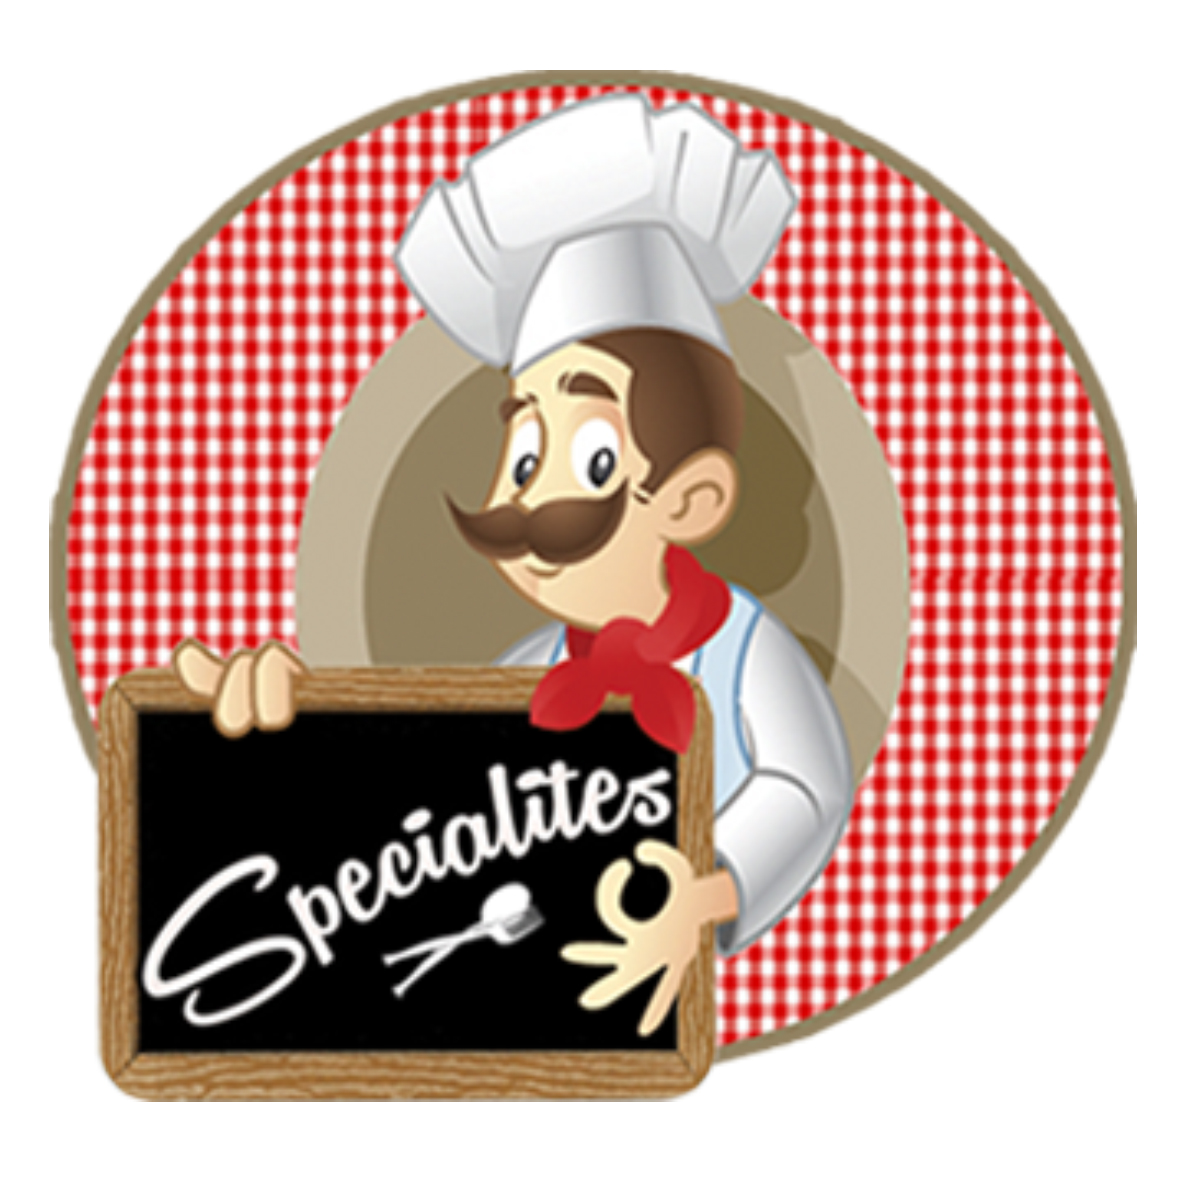 Specialites Homemade food